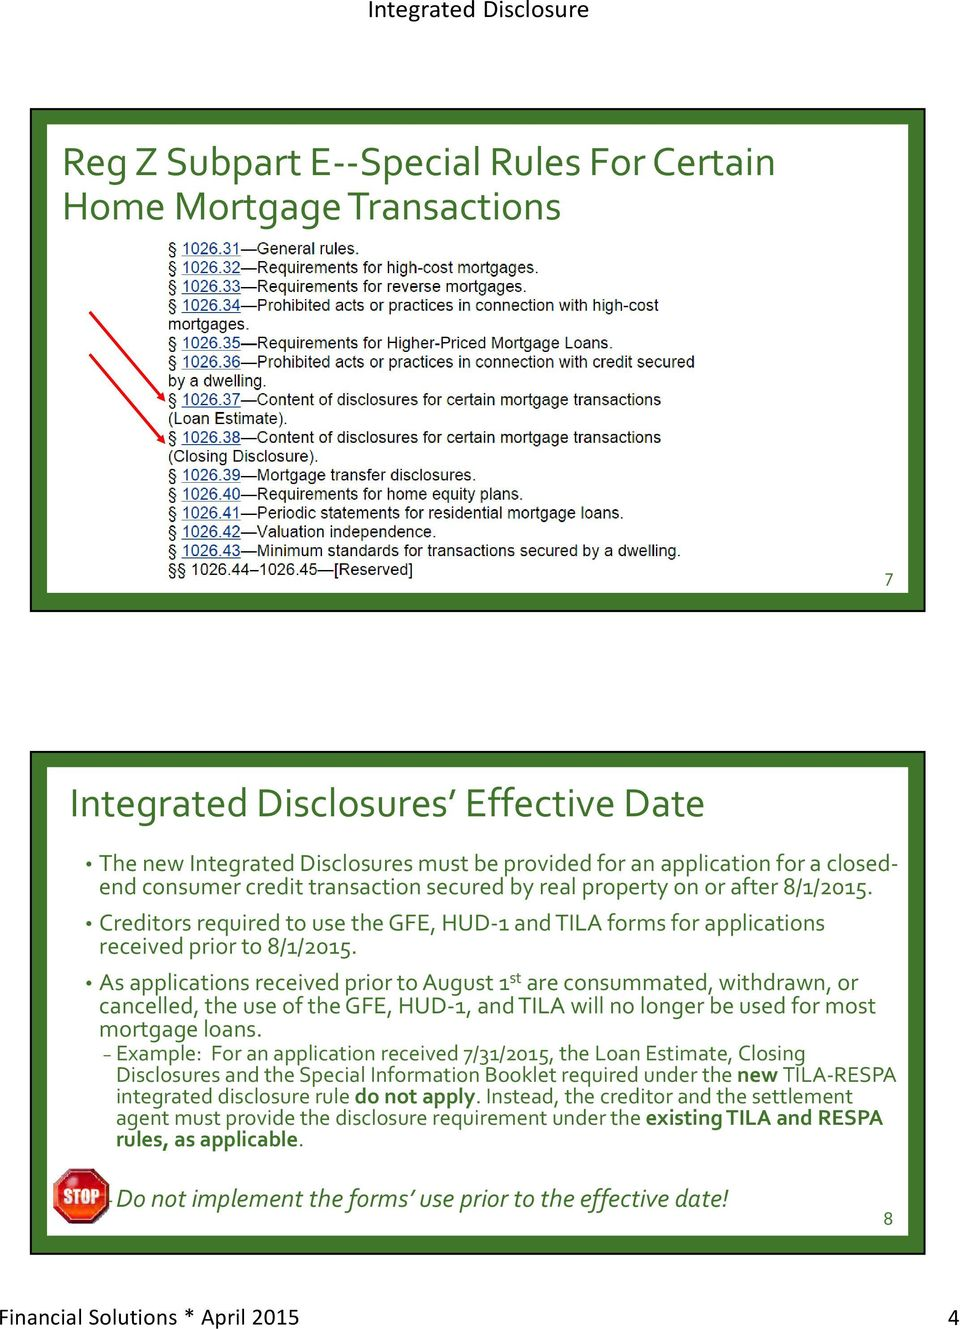 As applications received prior to August 1 st are consummated, withdrawn, or cancelled, the use of the GFE, HUD 1, and TILA will no longer be used for most mortgage loans.